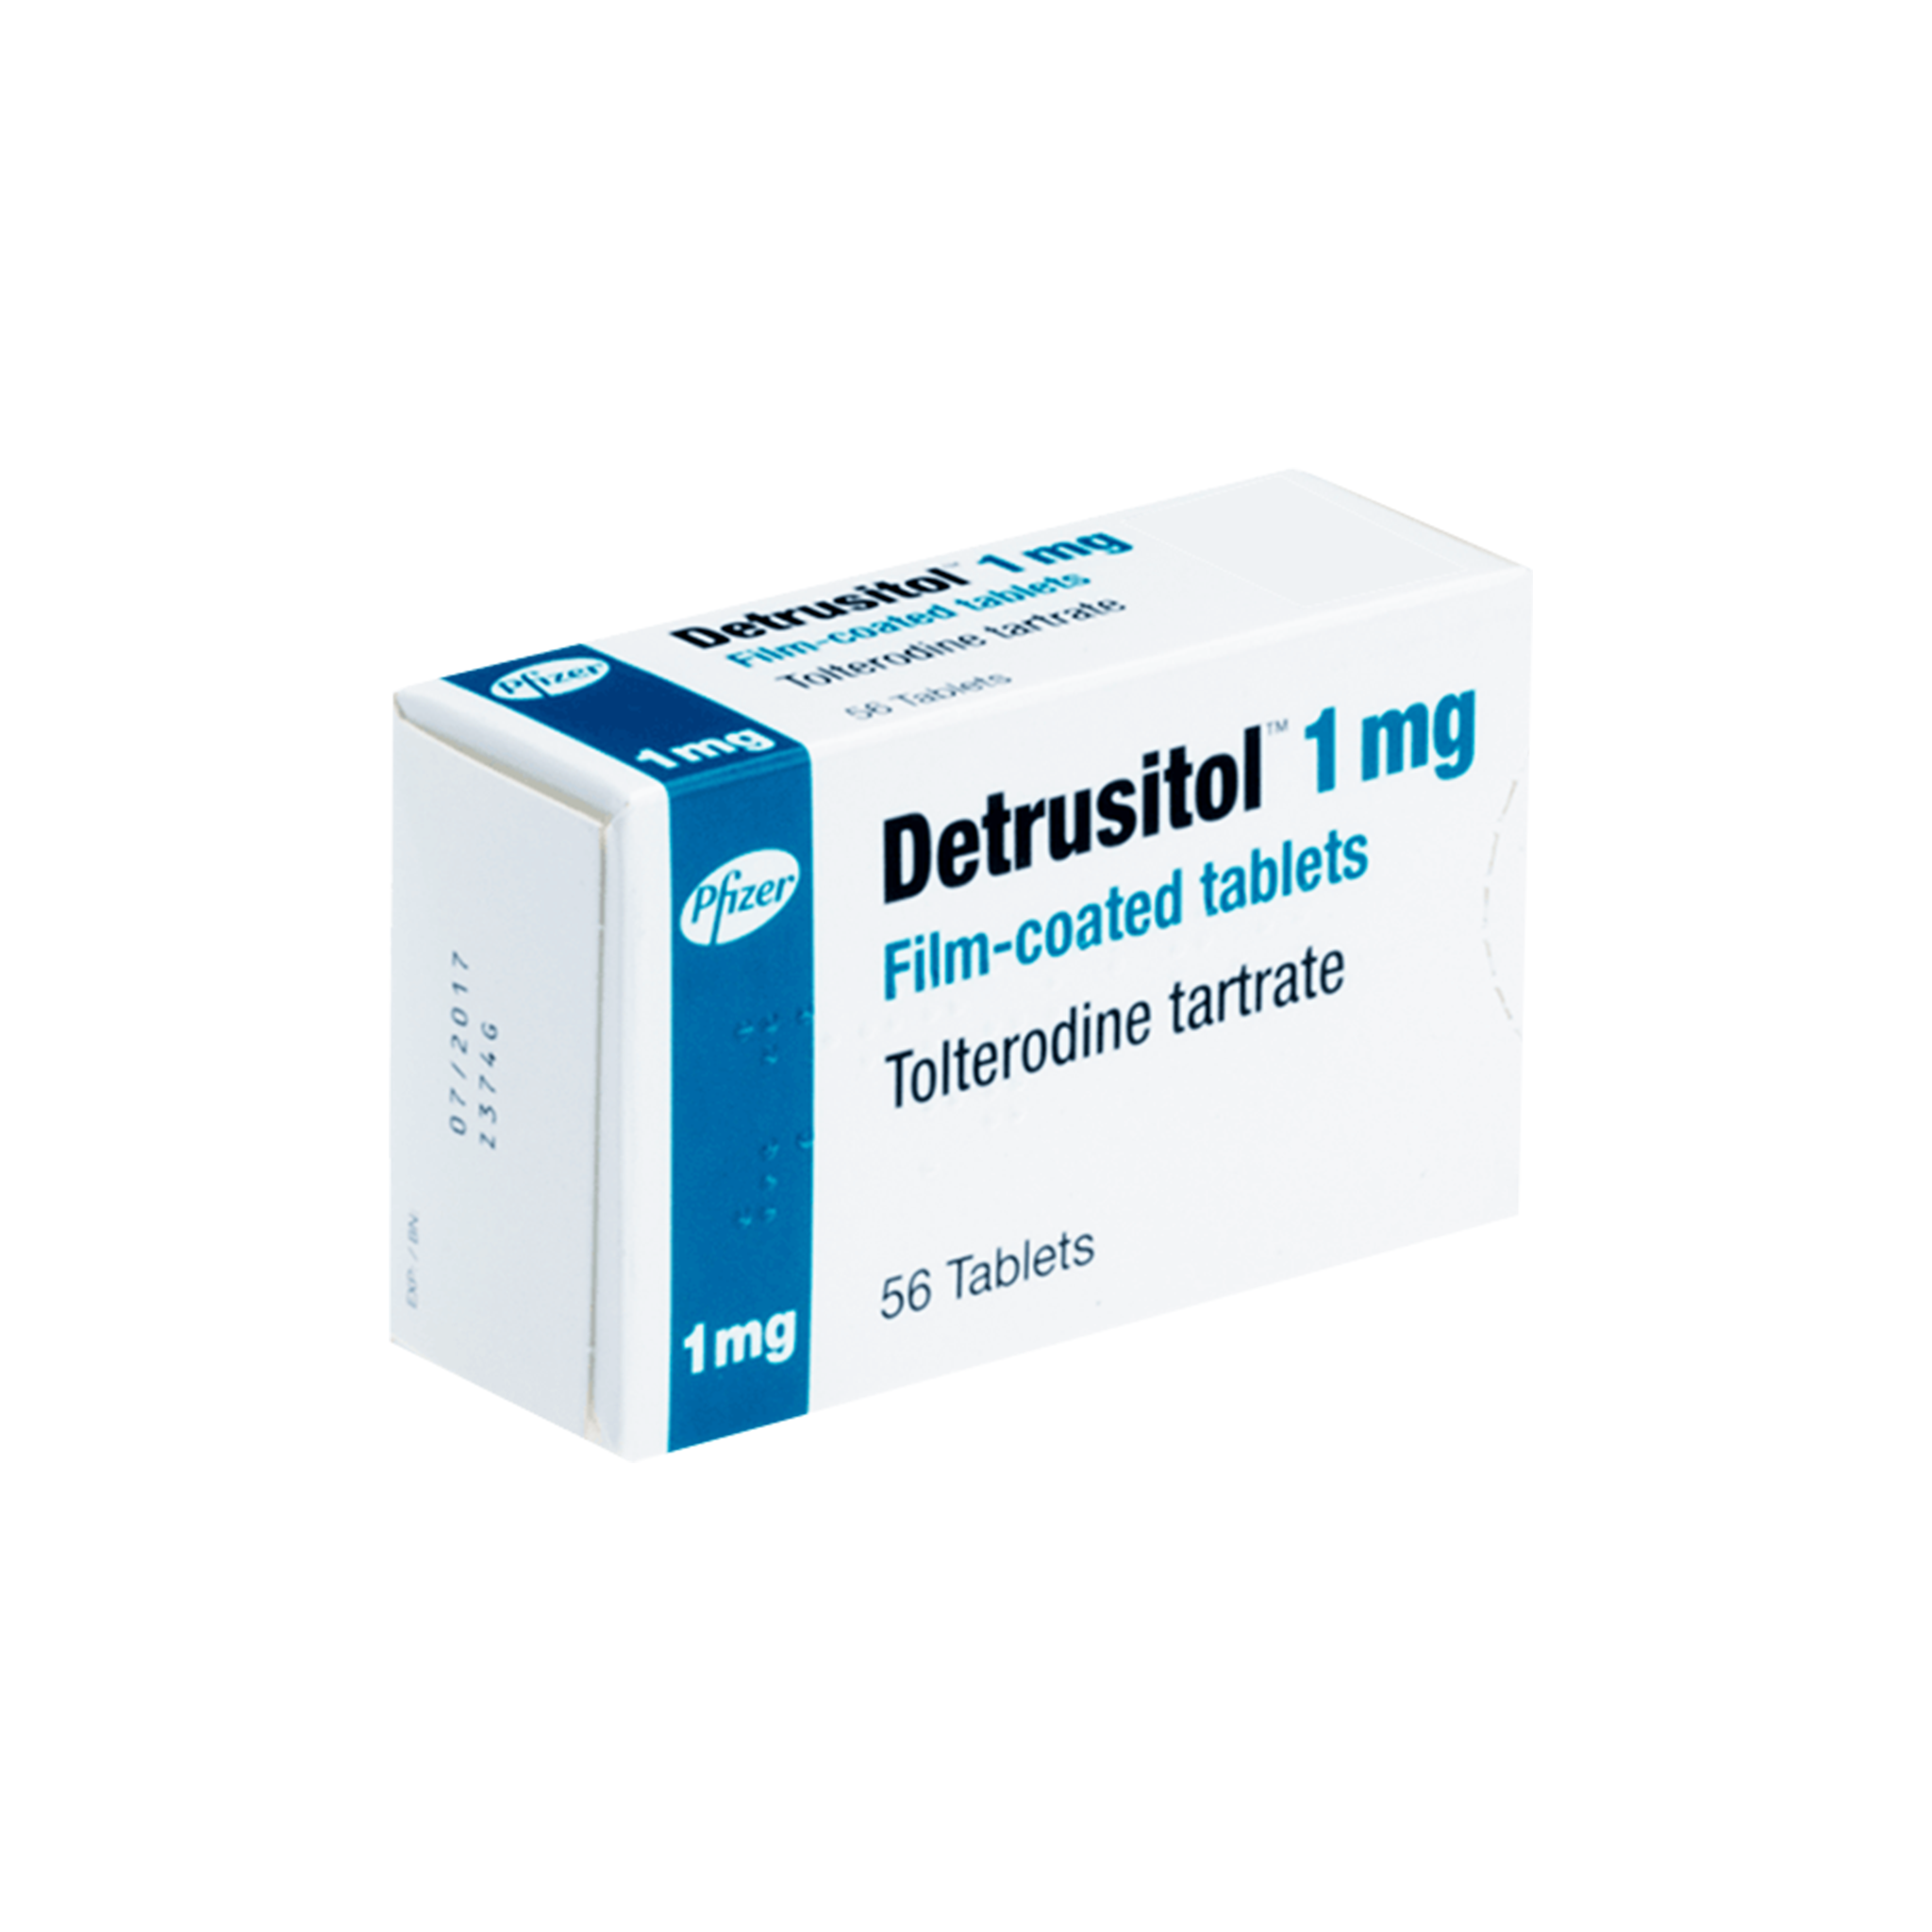 detrusitol